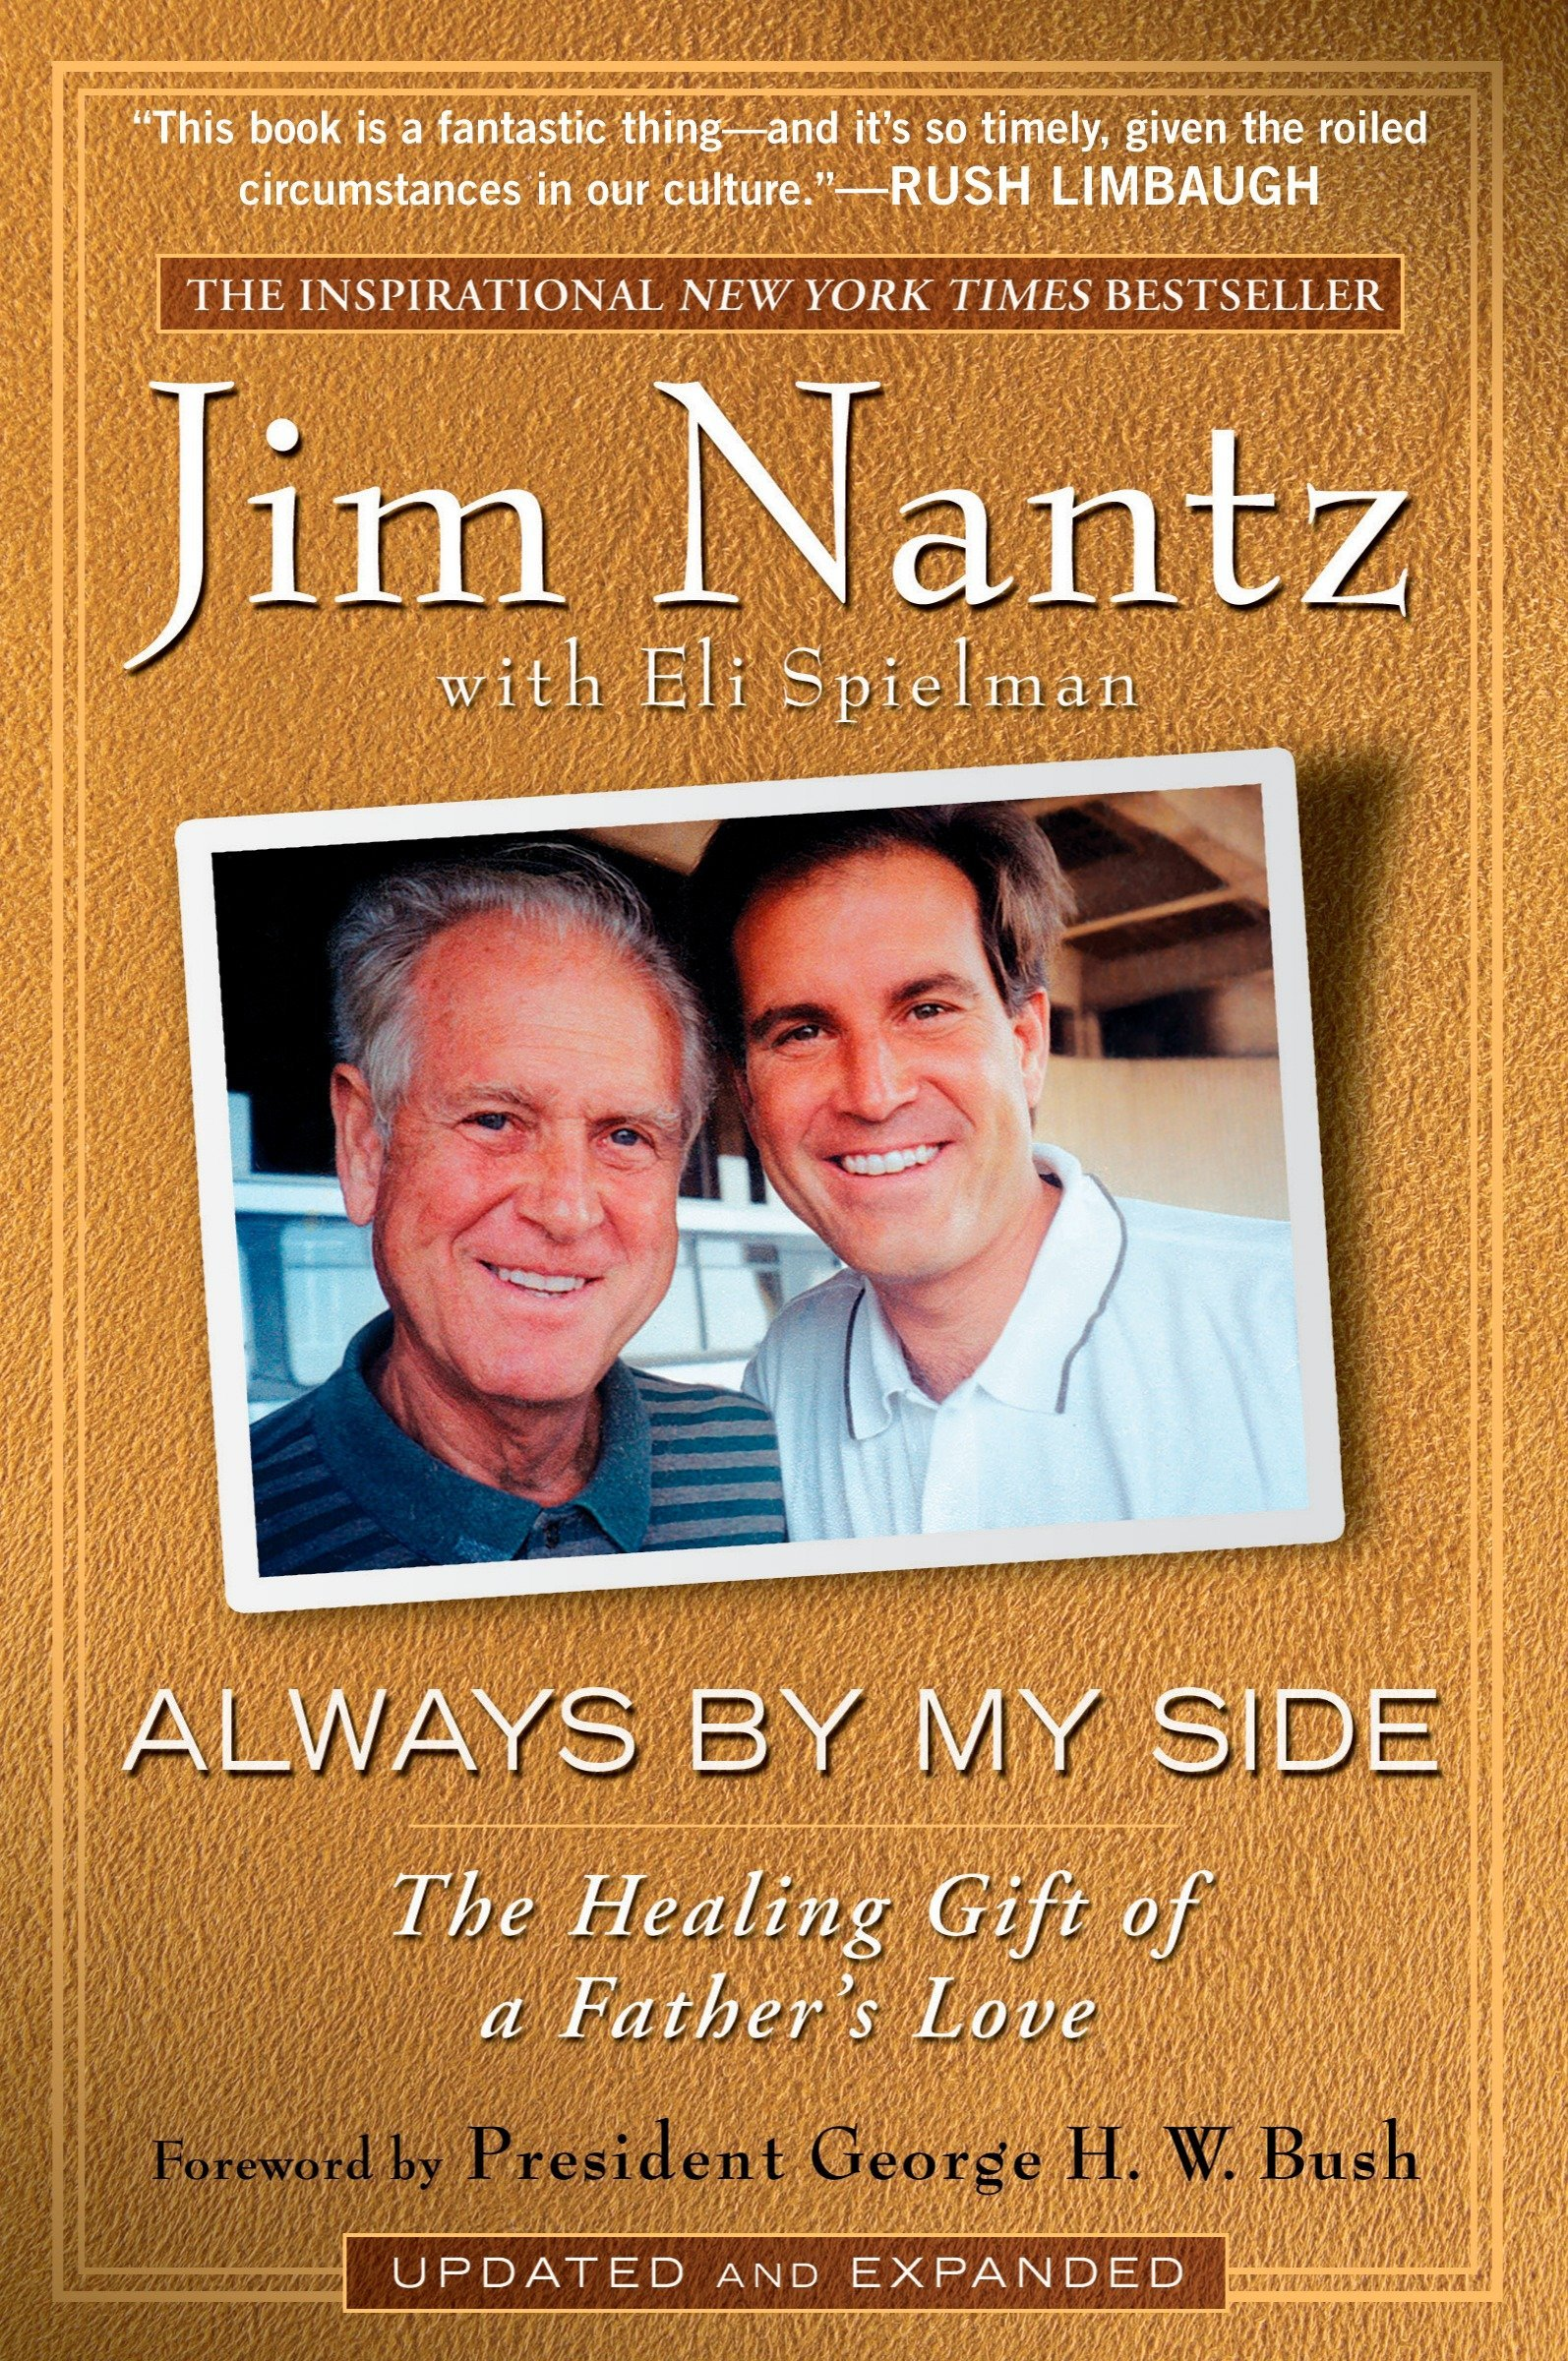 Always by My Side: The Healing Gift of a Father's Love Paperback – May 5, 2009 Jim Nantz Avery 1592404081 Parenting - Fatherhood